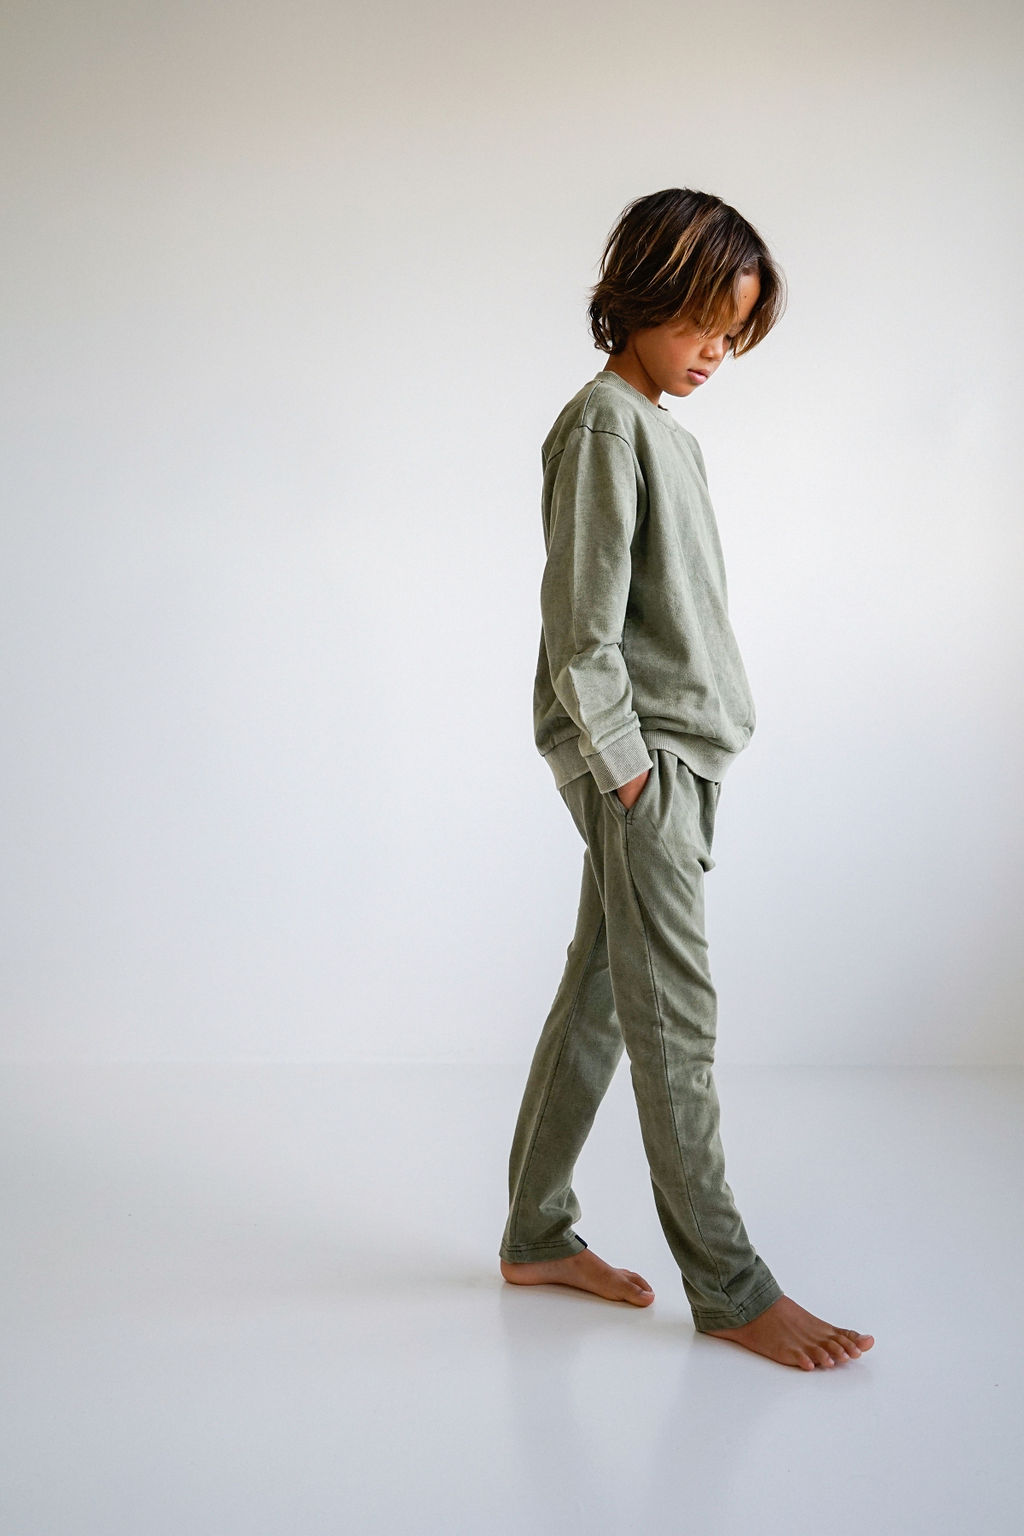 Children of the Tribe Olive Jumper ** Pre sale